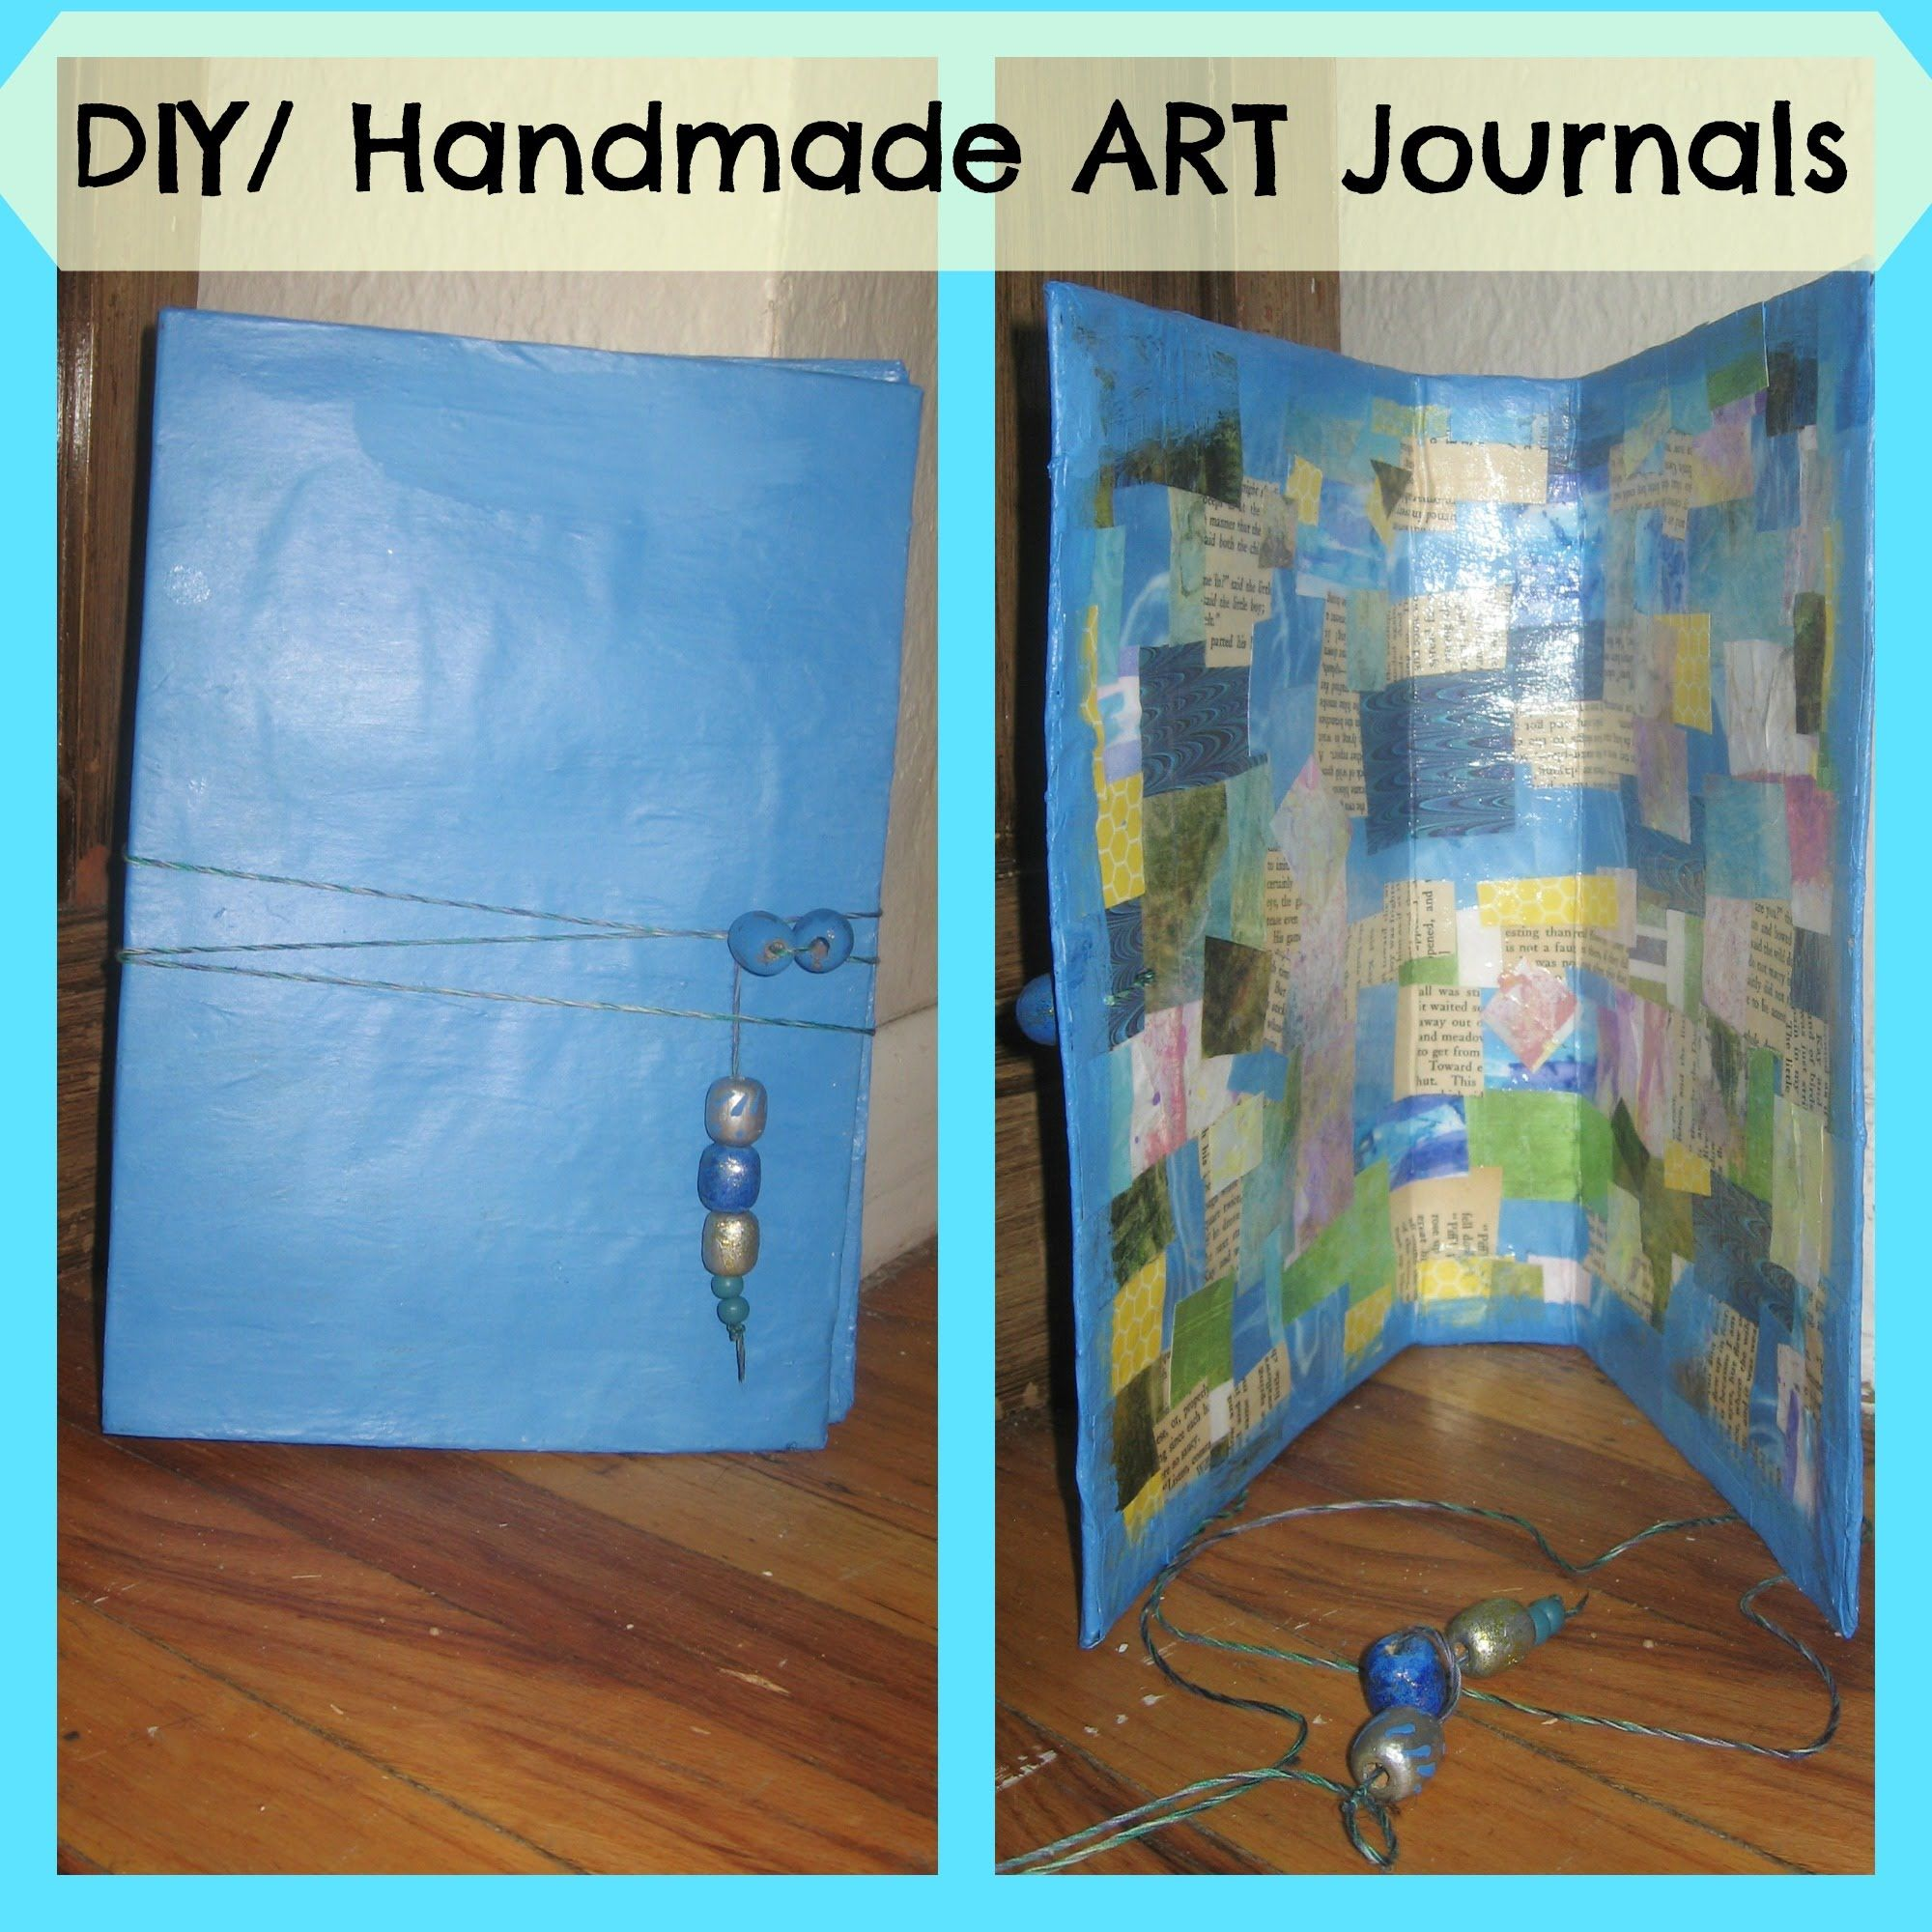 How to make a diy handmade art journal from recycled cereal boxes how to make a diy handmade art journal from recycled cereal boxes mixe ccuart Image collections